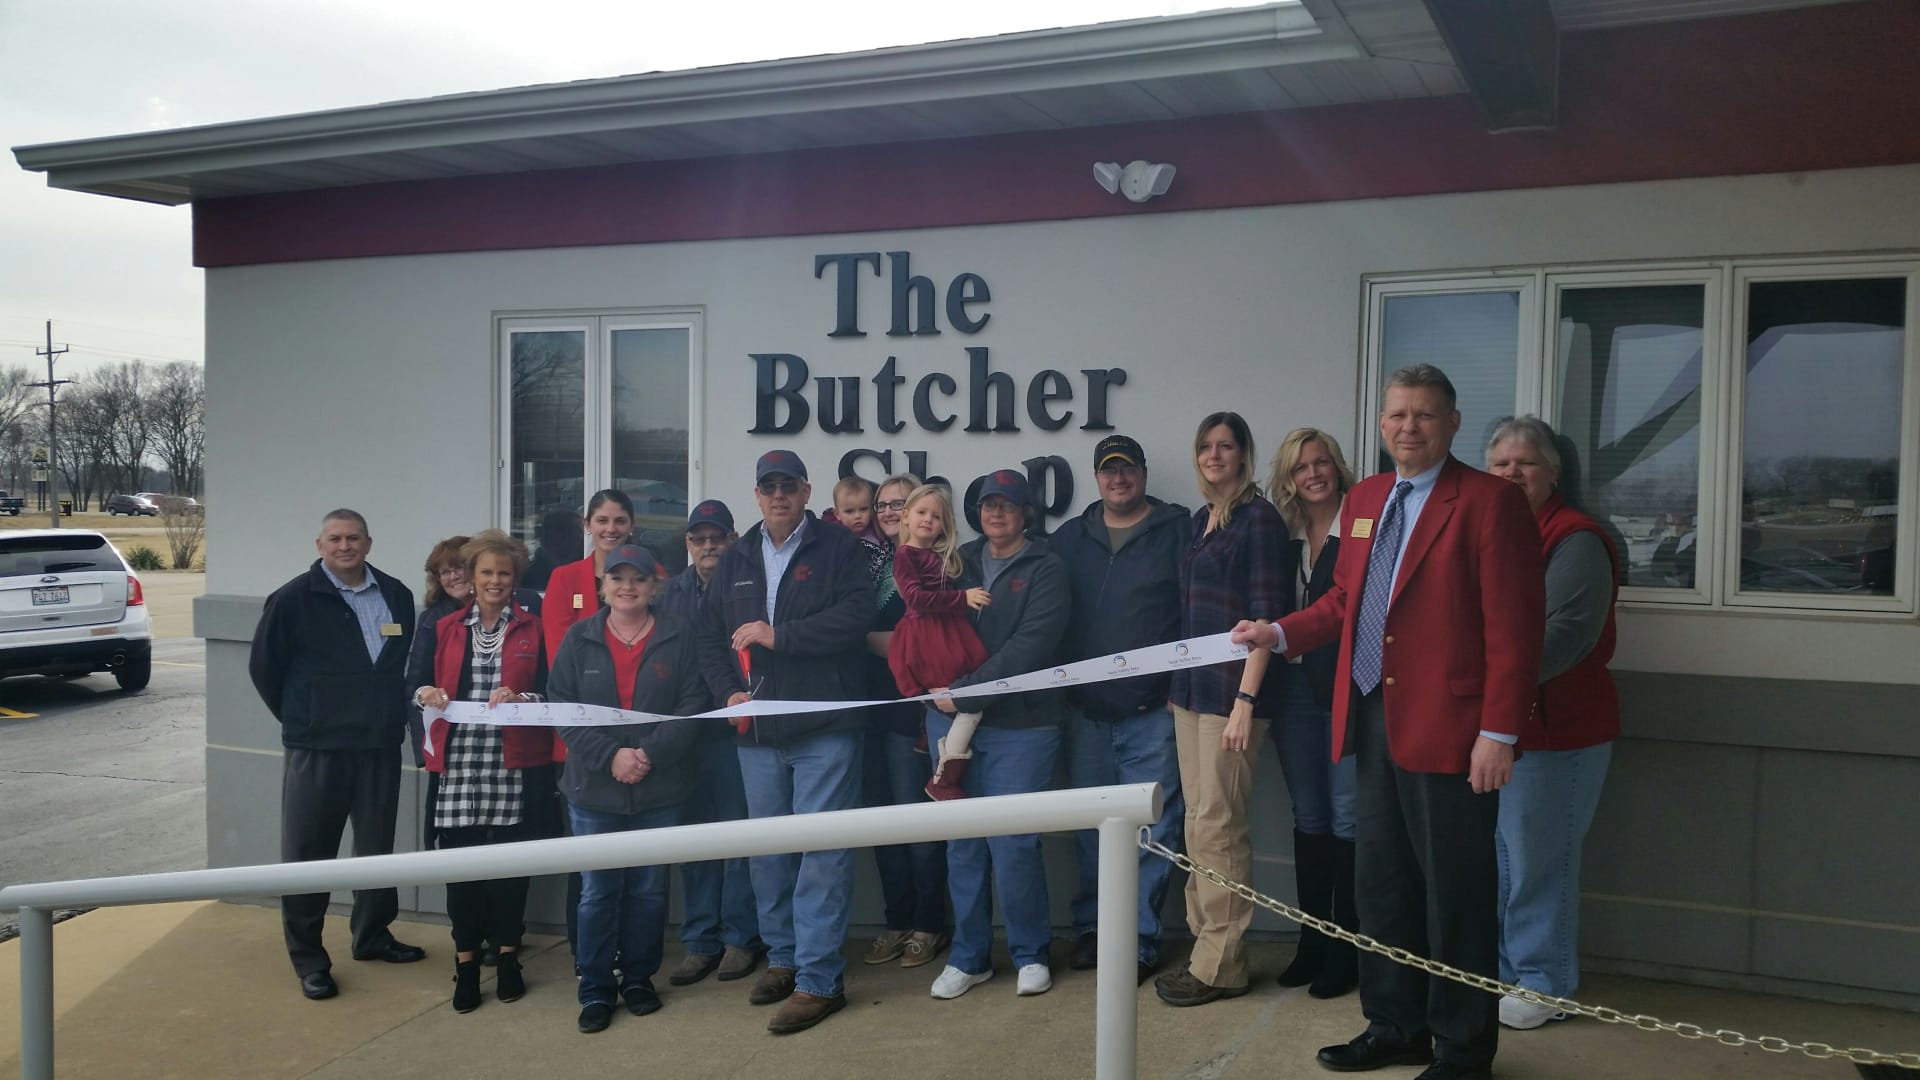 The-Butcher-Shop-Ribbon-Cutting-w1920.jpg